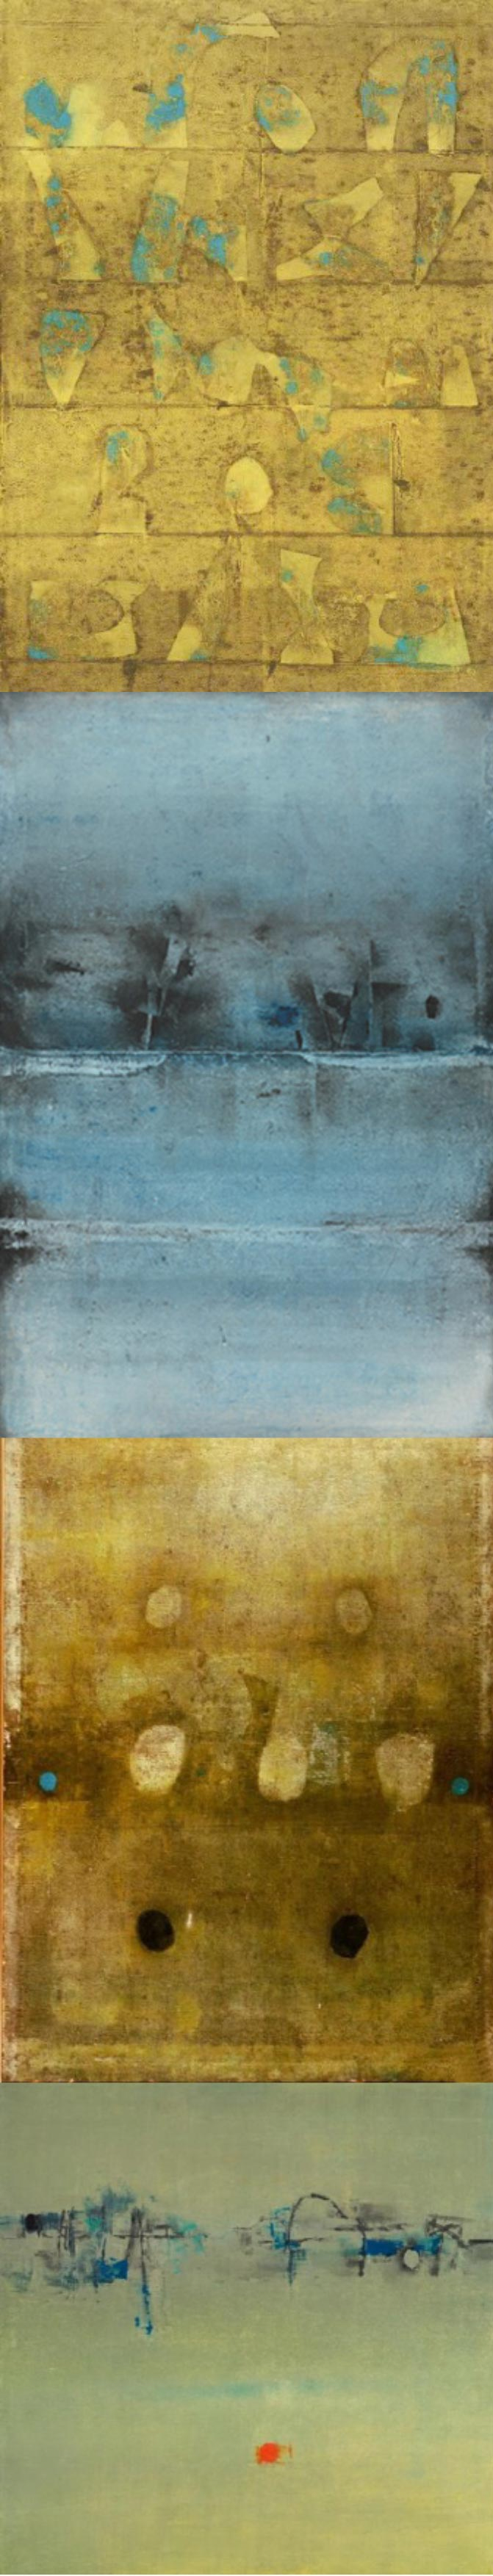 Gaitonde - Indian Artist